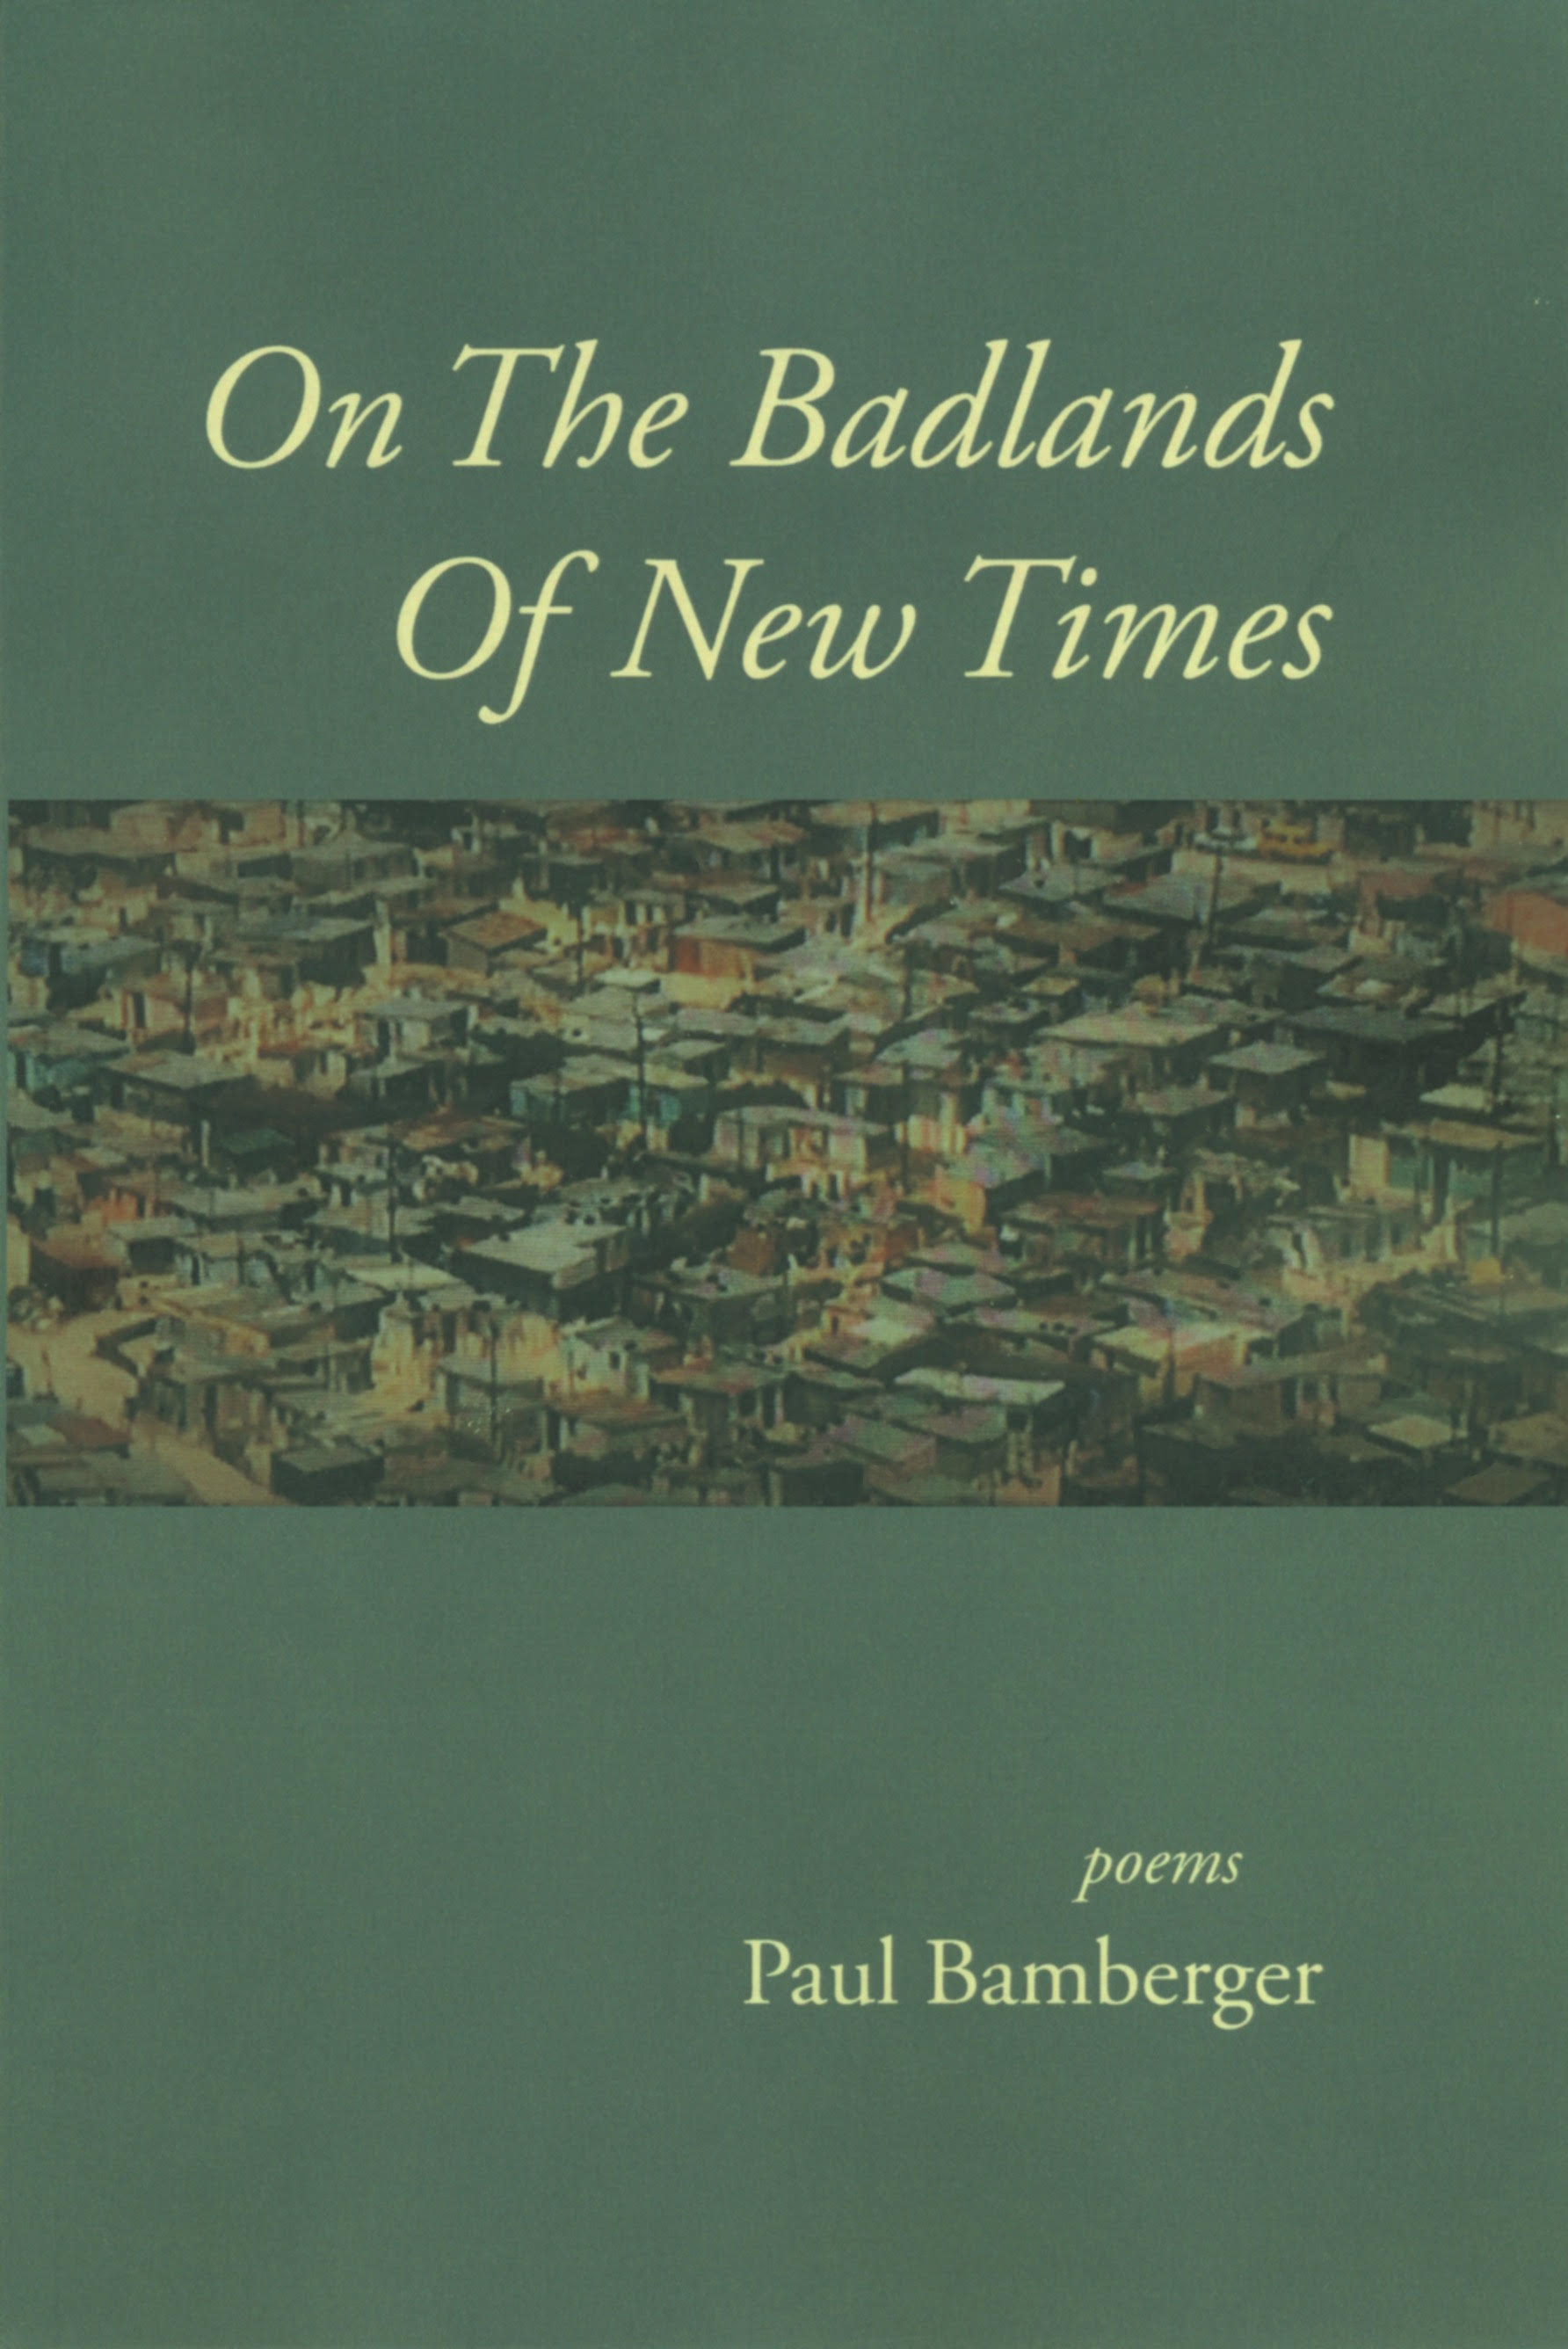 On The Badlands Of New Times